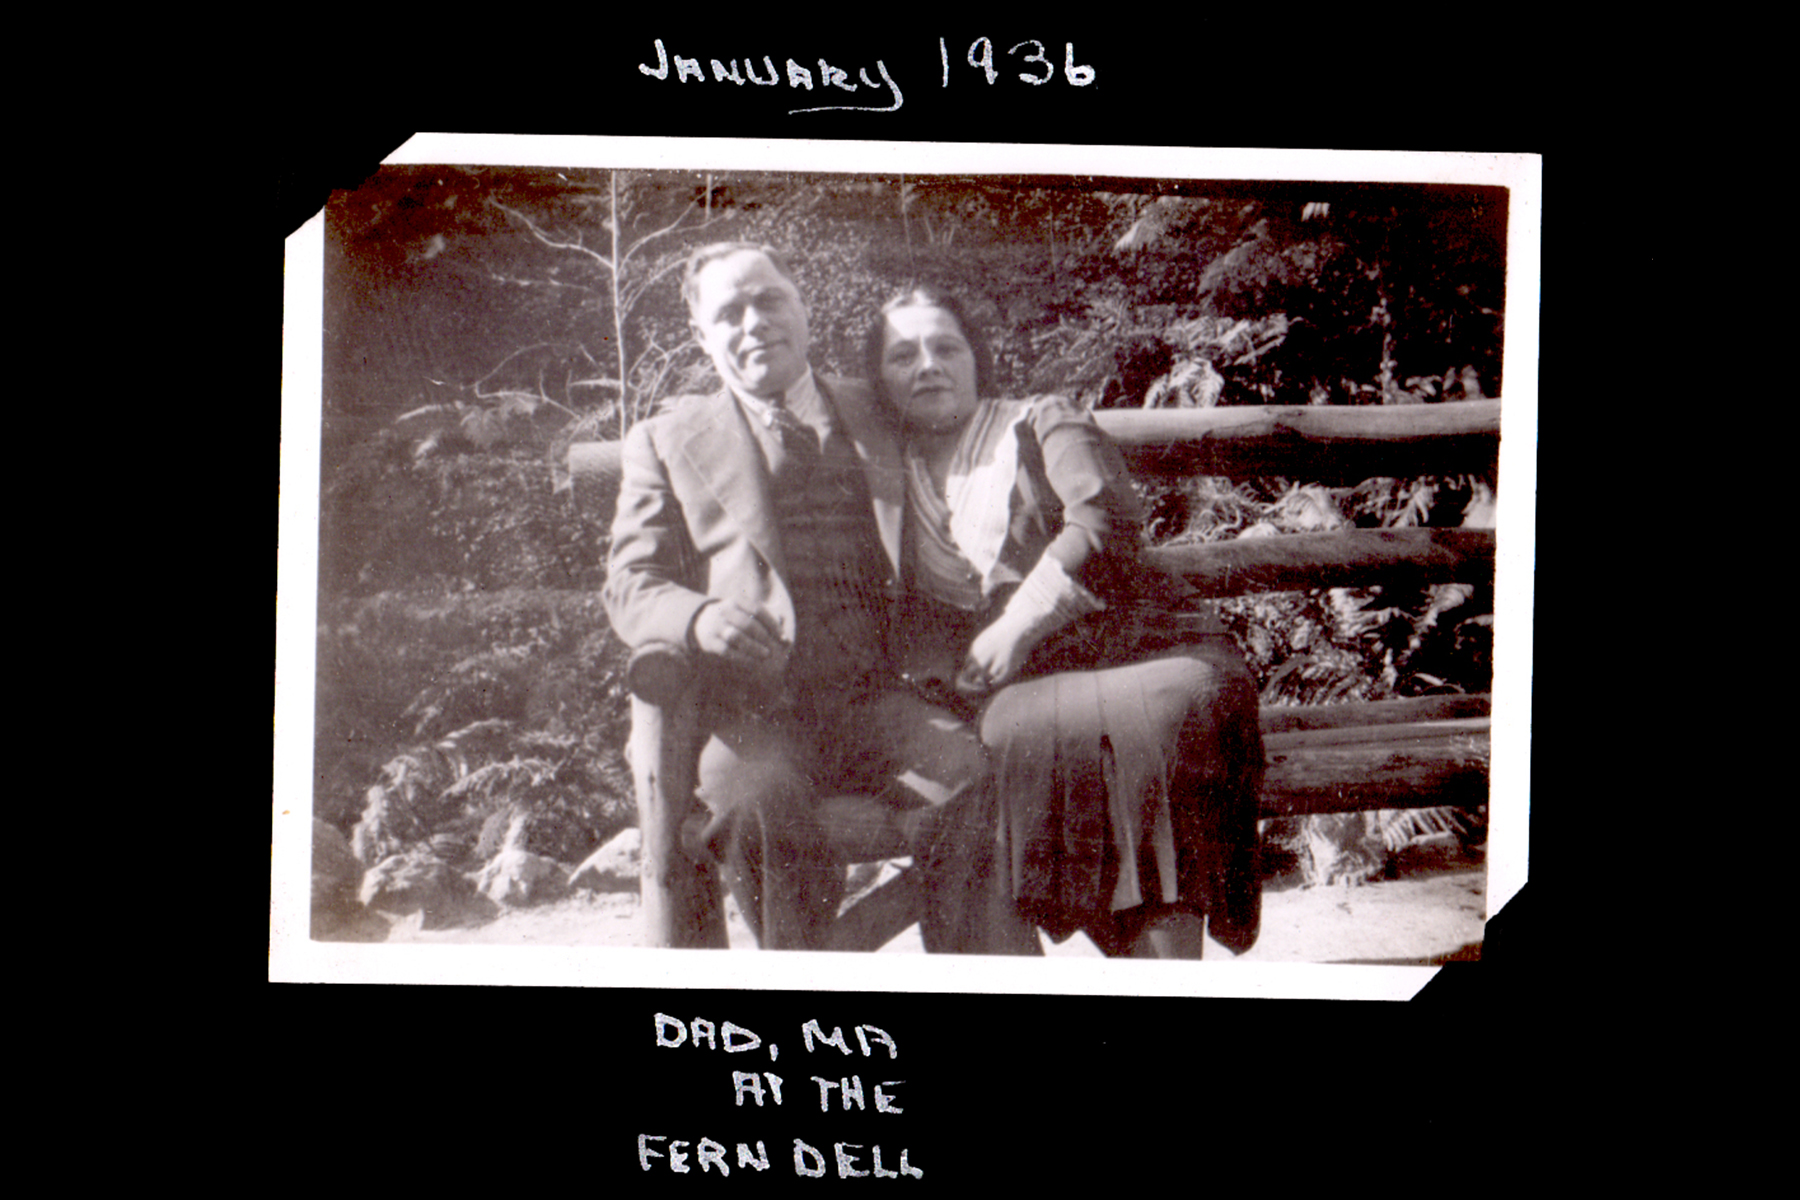 Isadore and Sadie Dorin (pictured) were immigrants who settled in Chicago. A family foundation is donating $3 million to UIC which will recognize the foundation's generosity through a term naming of the UIC Forum as the Isadore and Sadie Dorin Forum at UIC, and will provide scholarships to undergraduate students from Cook County.